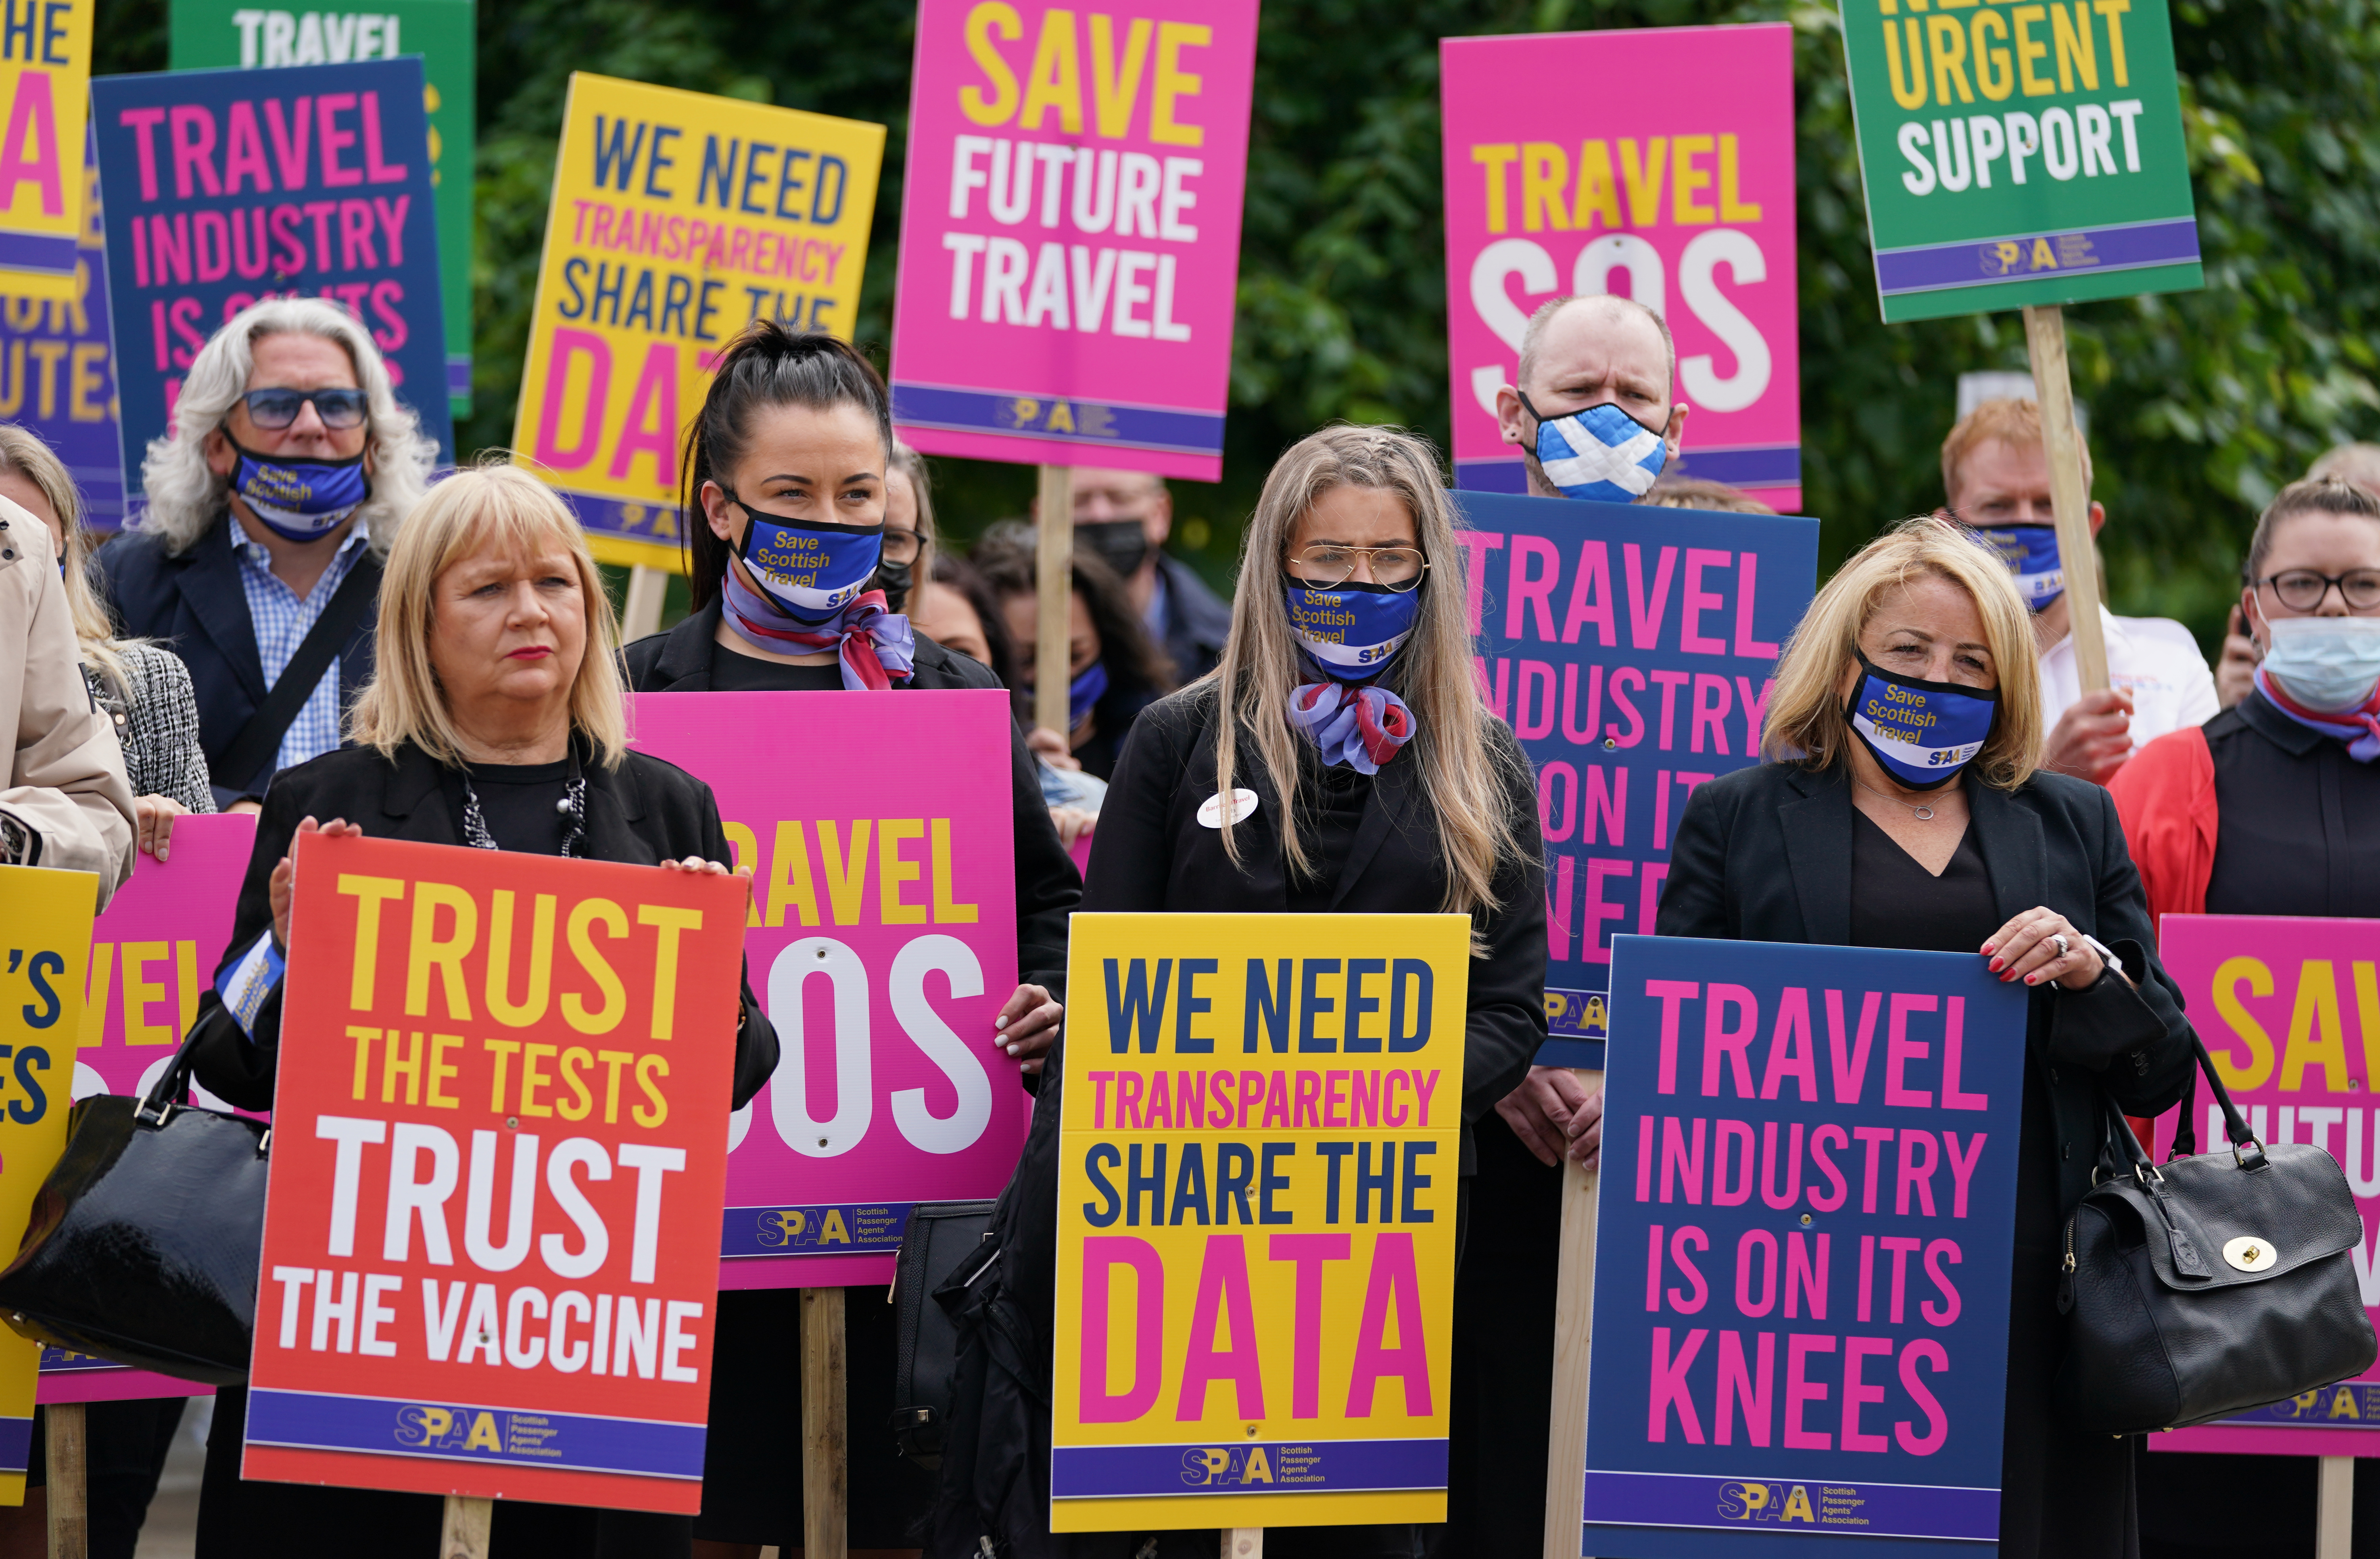 <p>Trade bodies from across the aviation and travel industries outside the Scottish Parliament in Edinburgh, during a Travel Day of Action calling on the UK Government to support a safe return to international travel in time for the peak summer period. Picture date: Wednesday June 23, 2021.</p>